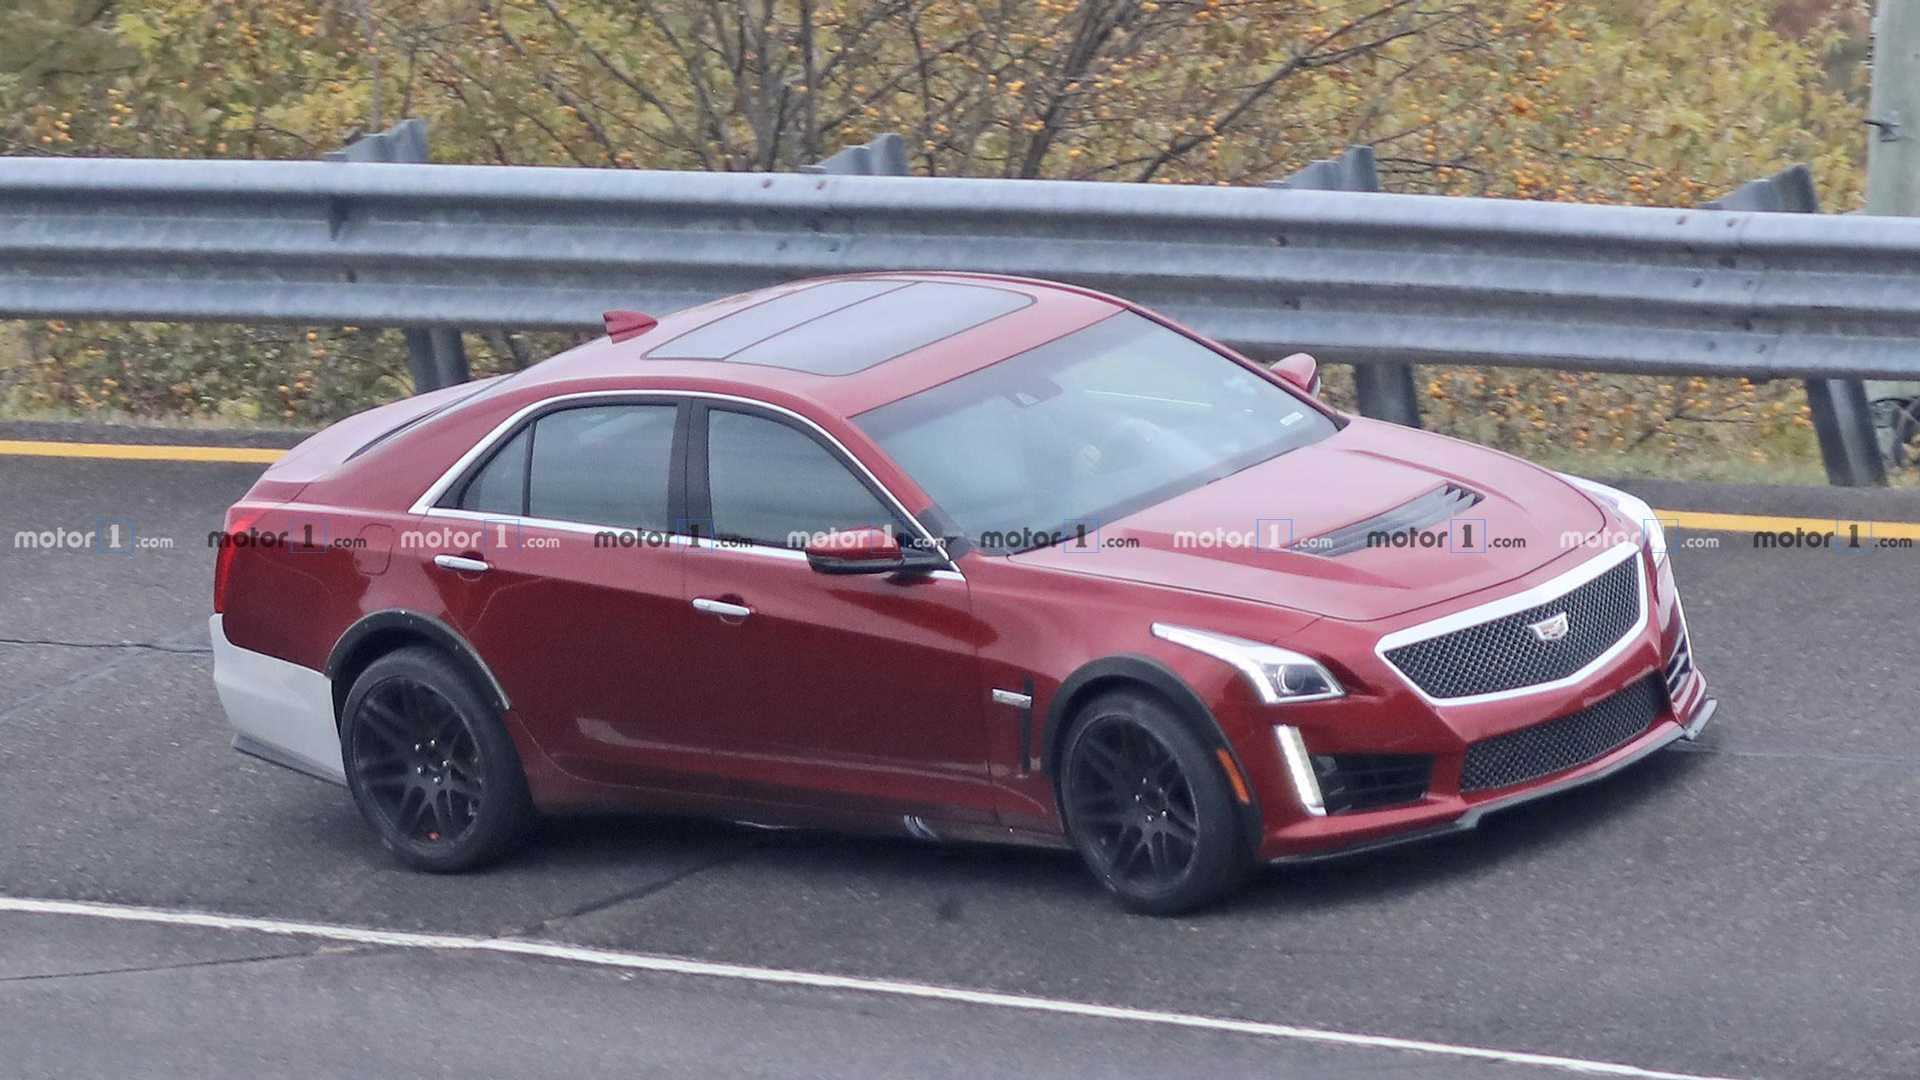 Cadillac Ct5 V Or Widebody Cts V Spied In Mysterious Photos